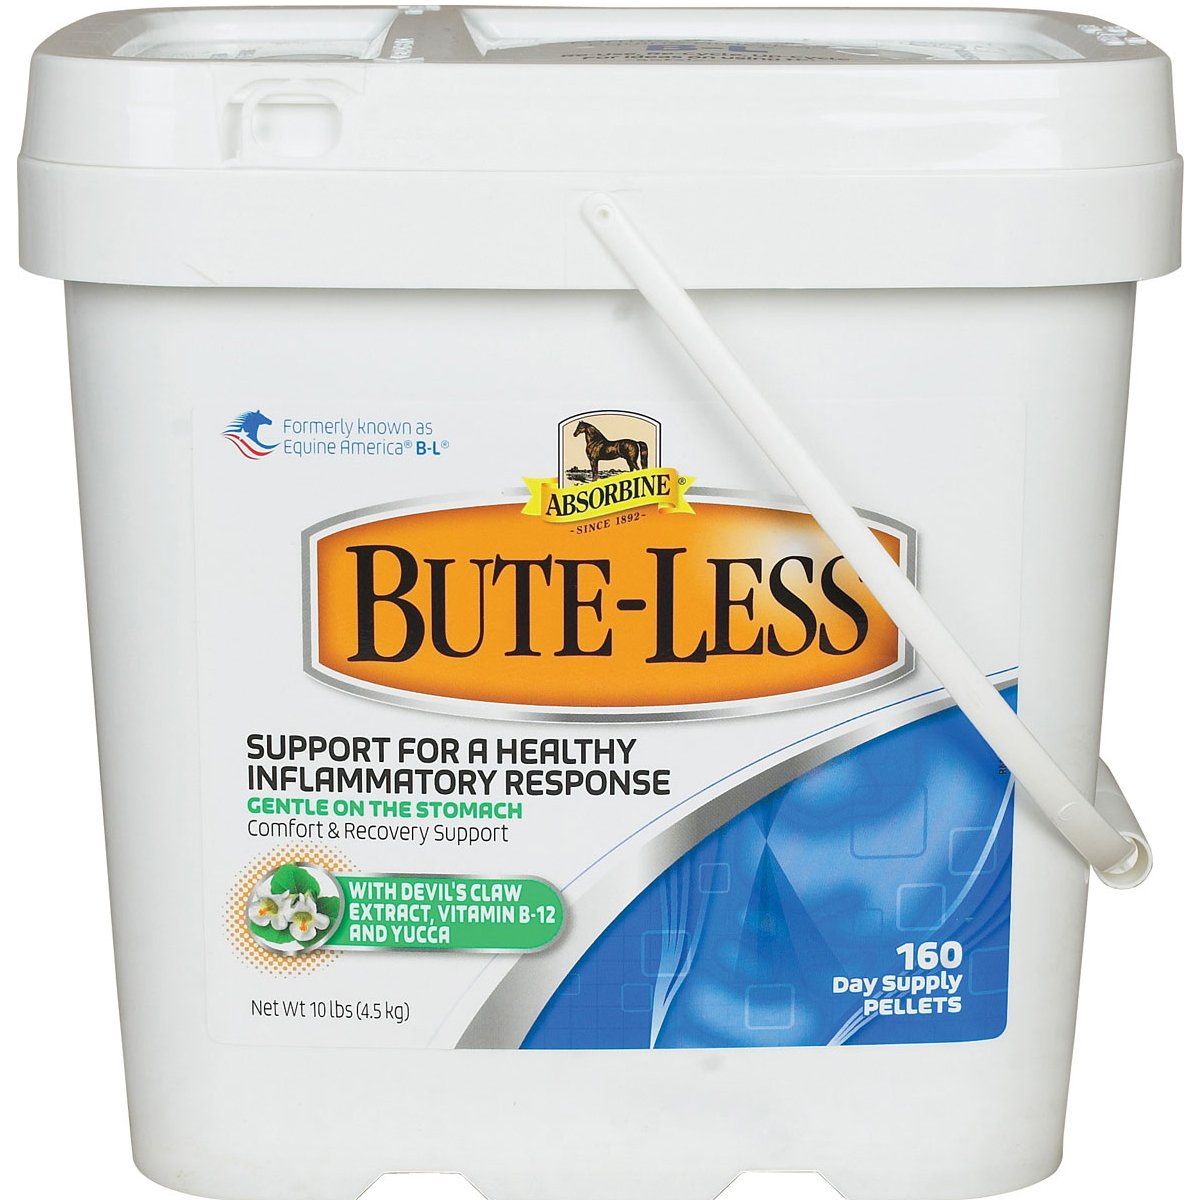 Absorbine RM 363180B Bute-Less Comfort & Recovery, White, 10 lb by Absorbine